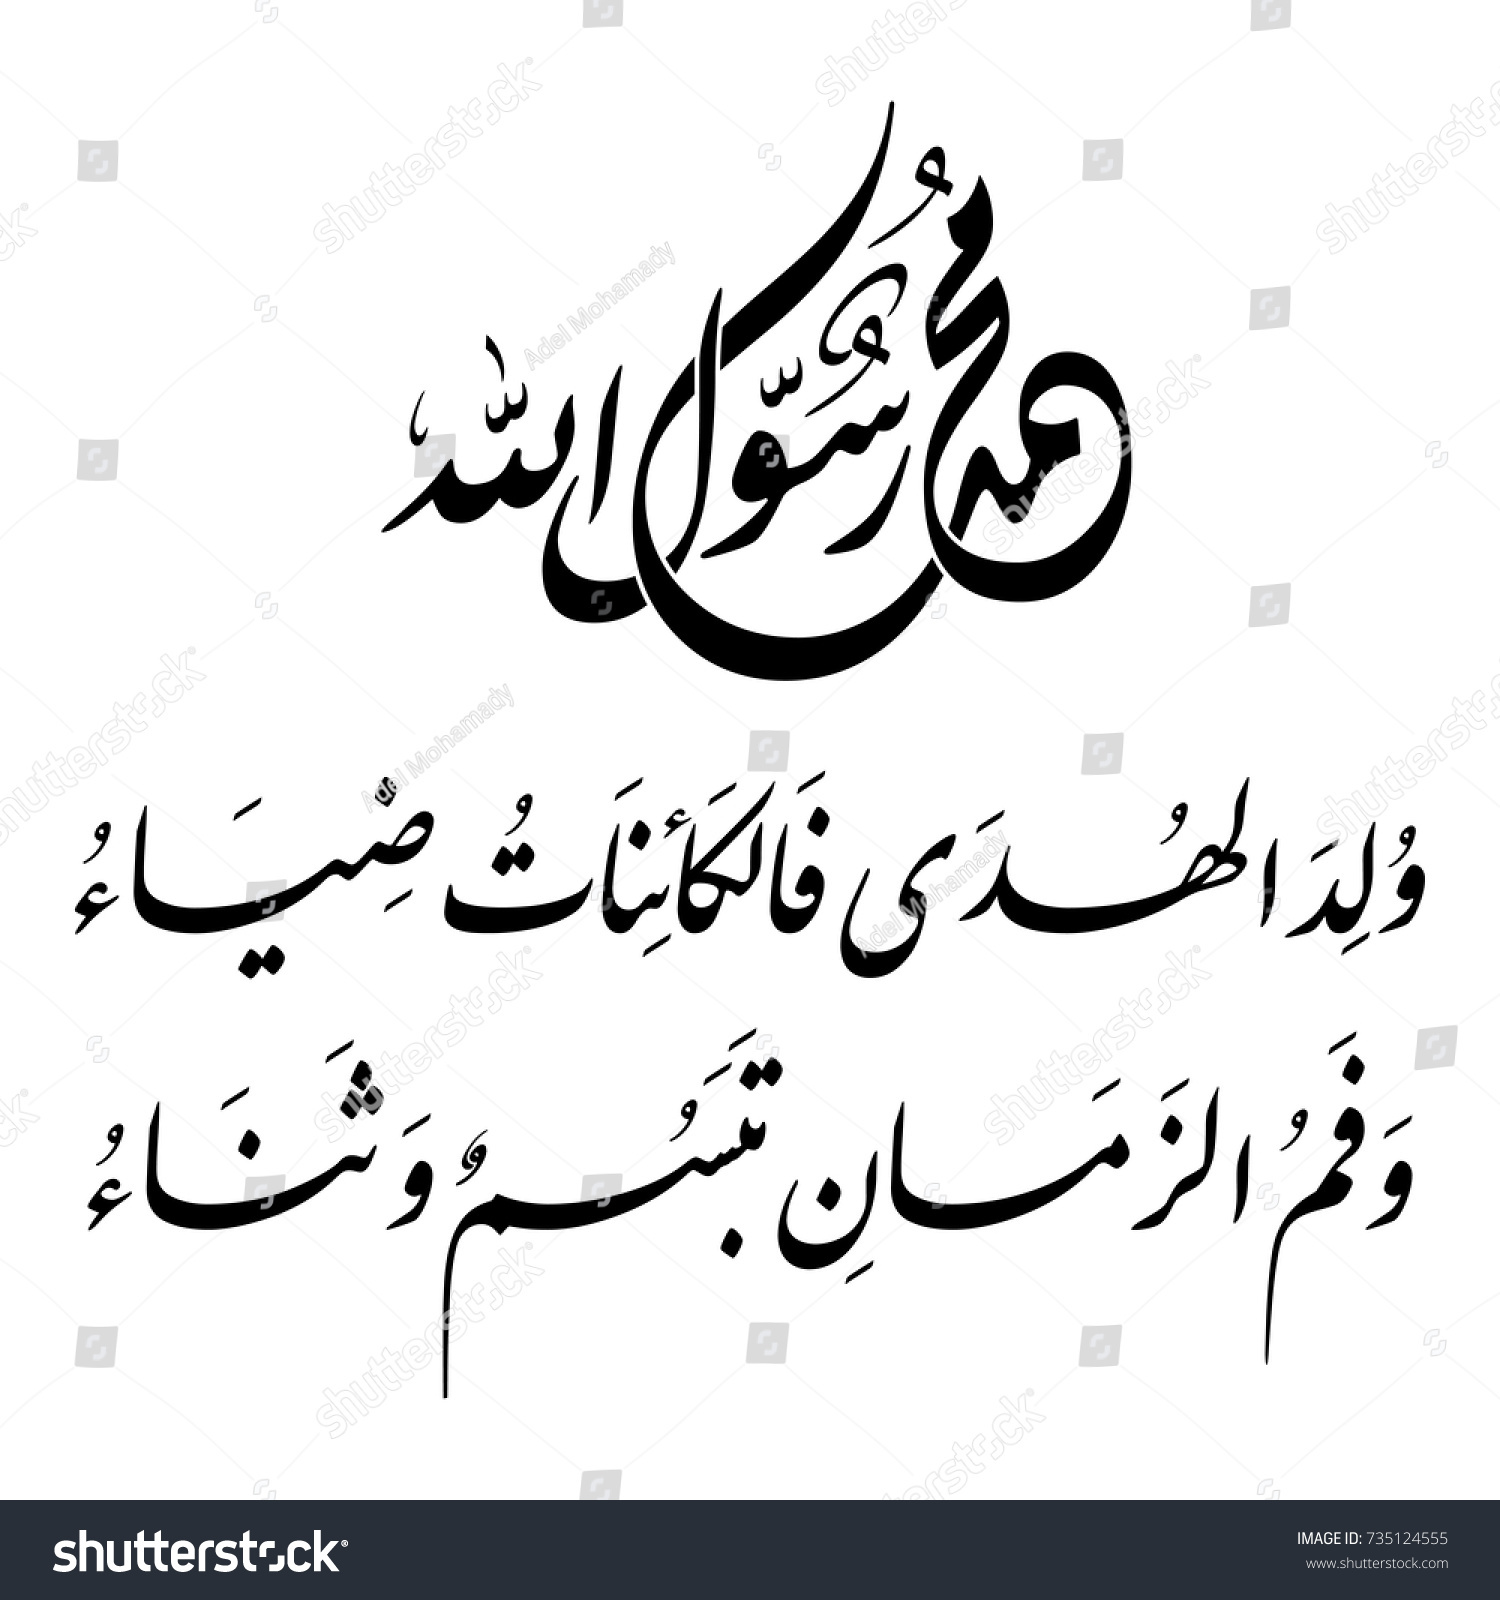 Arabic calligraphy poetry prophet muhammad peace stock